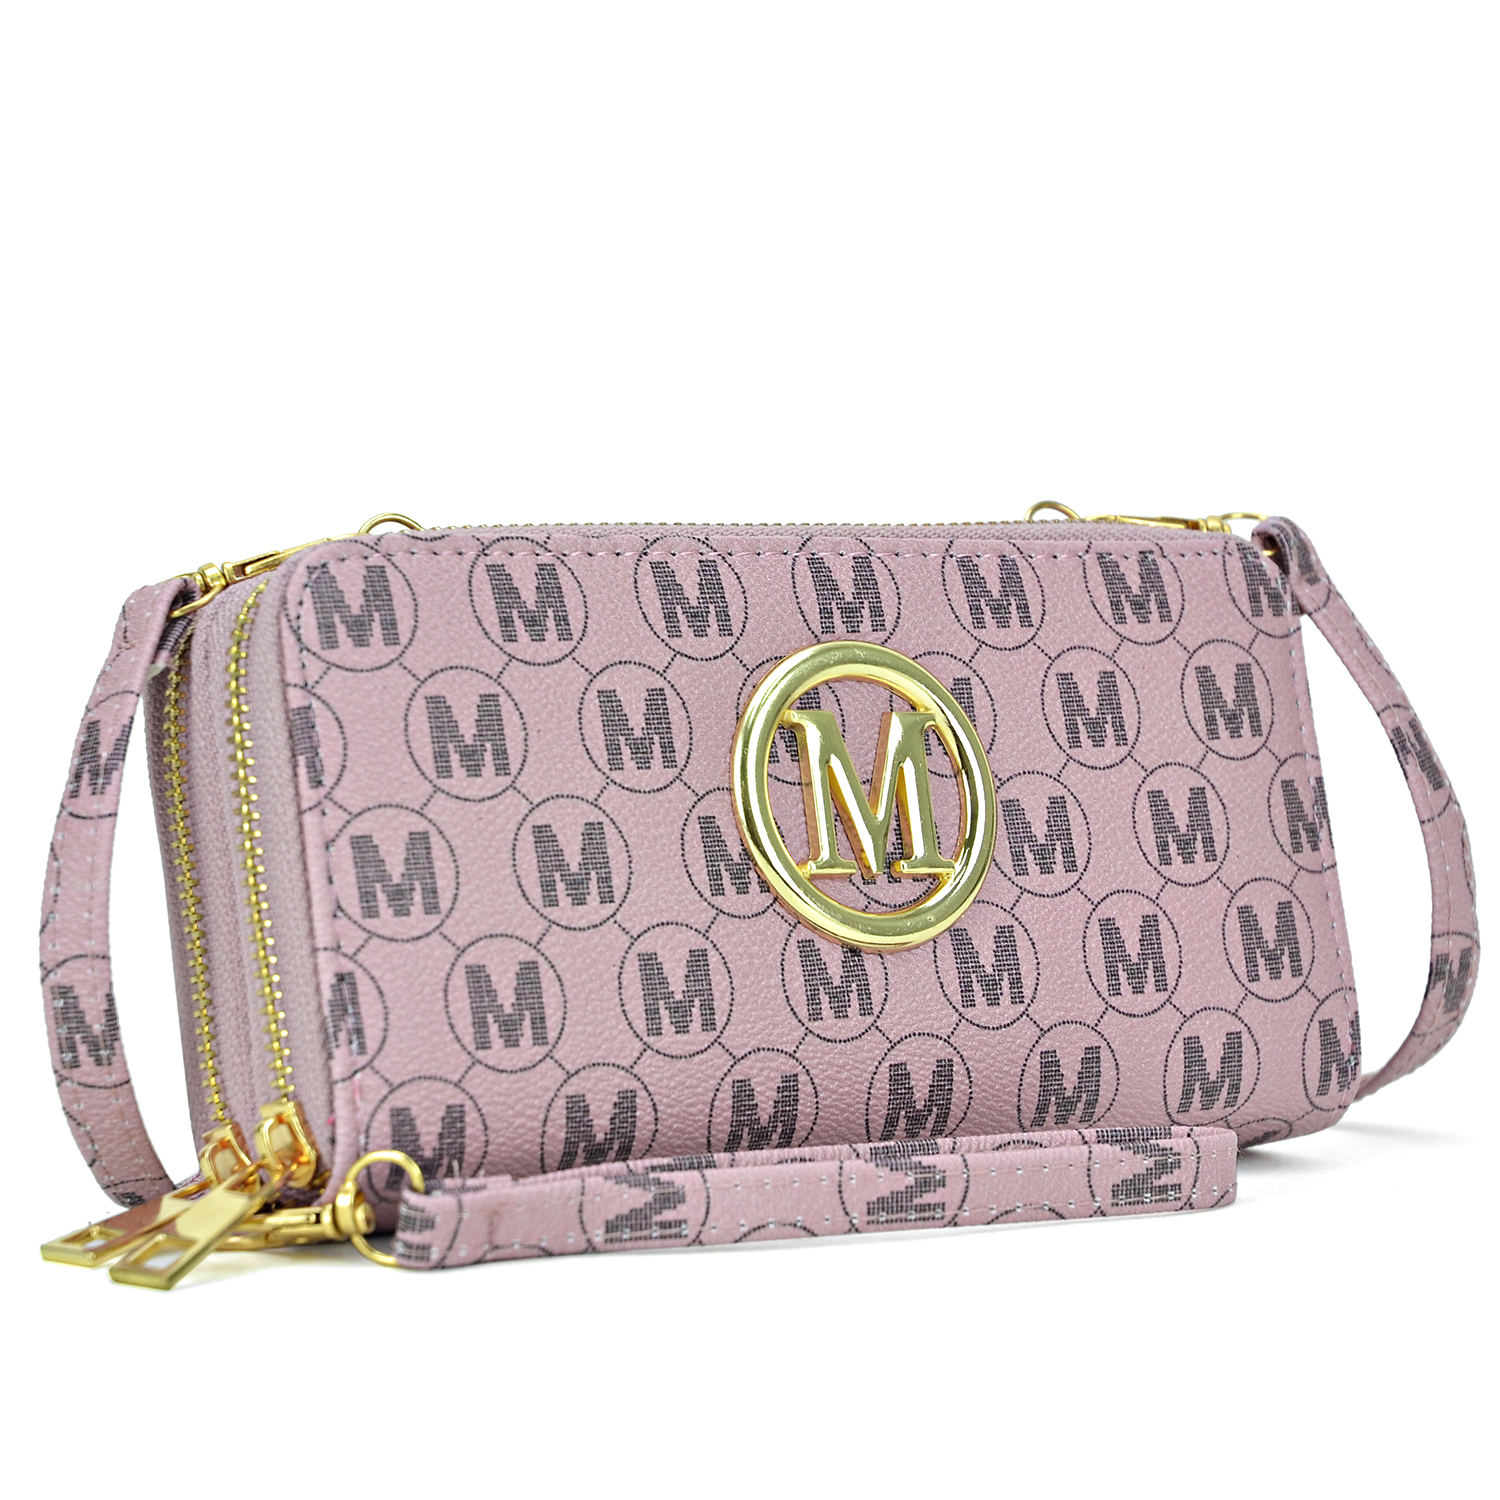 Monogram Imprint with Logo Emblem Double layer Zip Around Wallet with Shoulder and Wristlet Strap